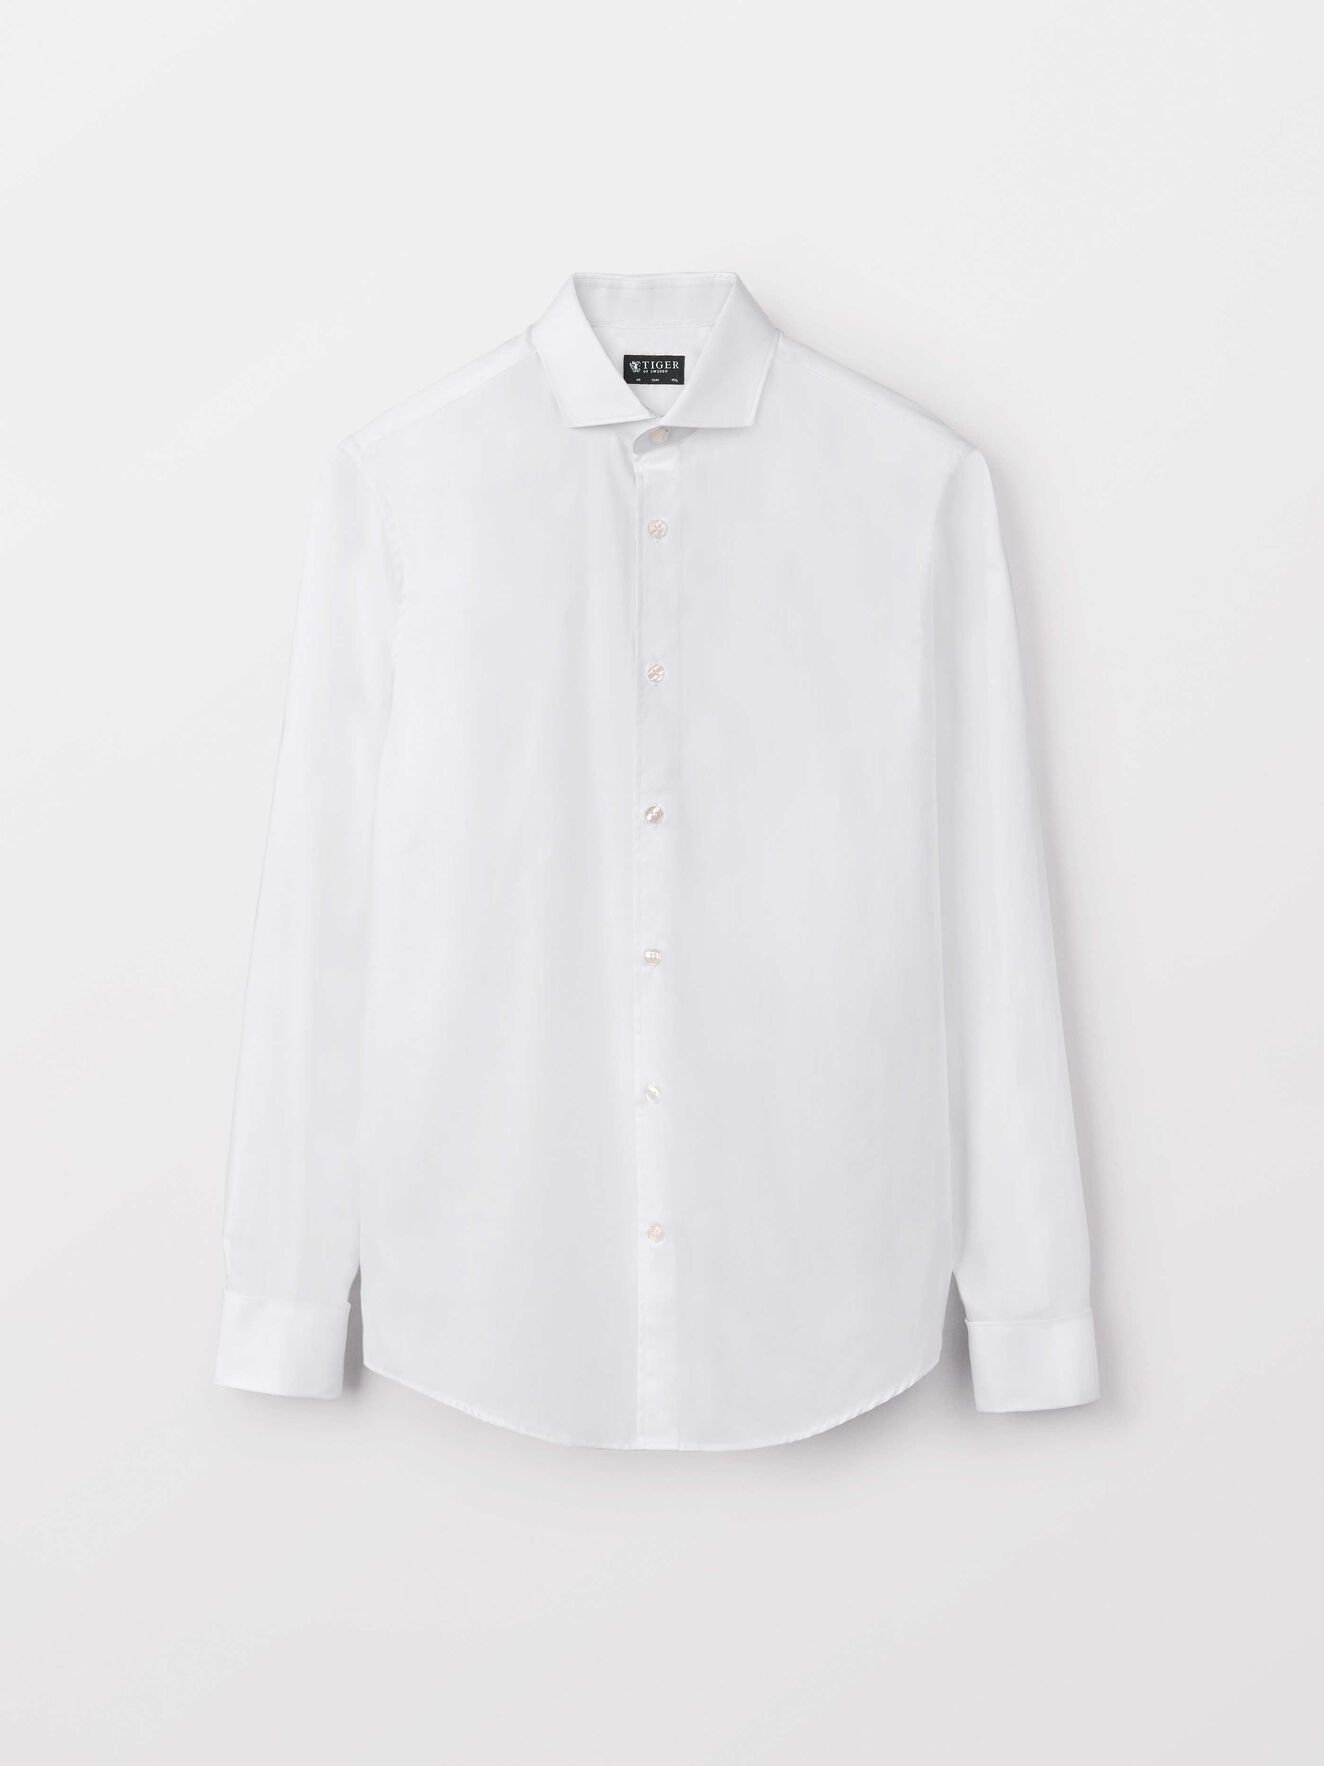 Farrell Dc Shirt in Pure white from Tiger of Sweden